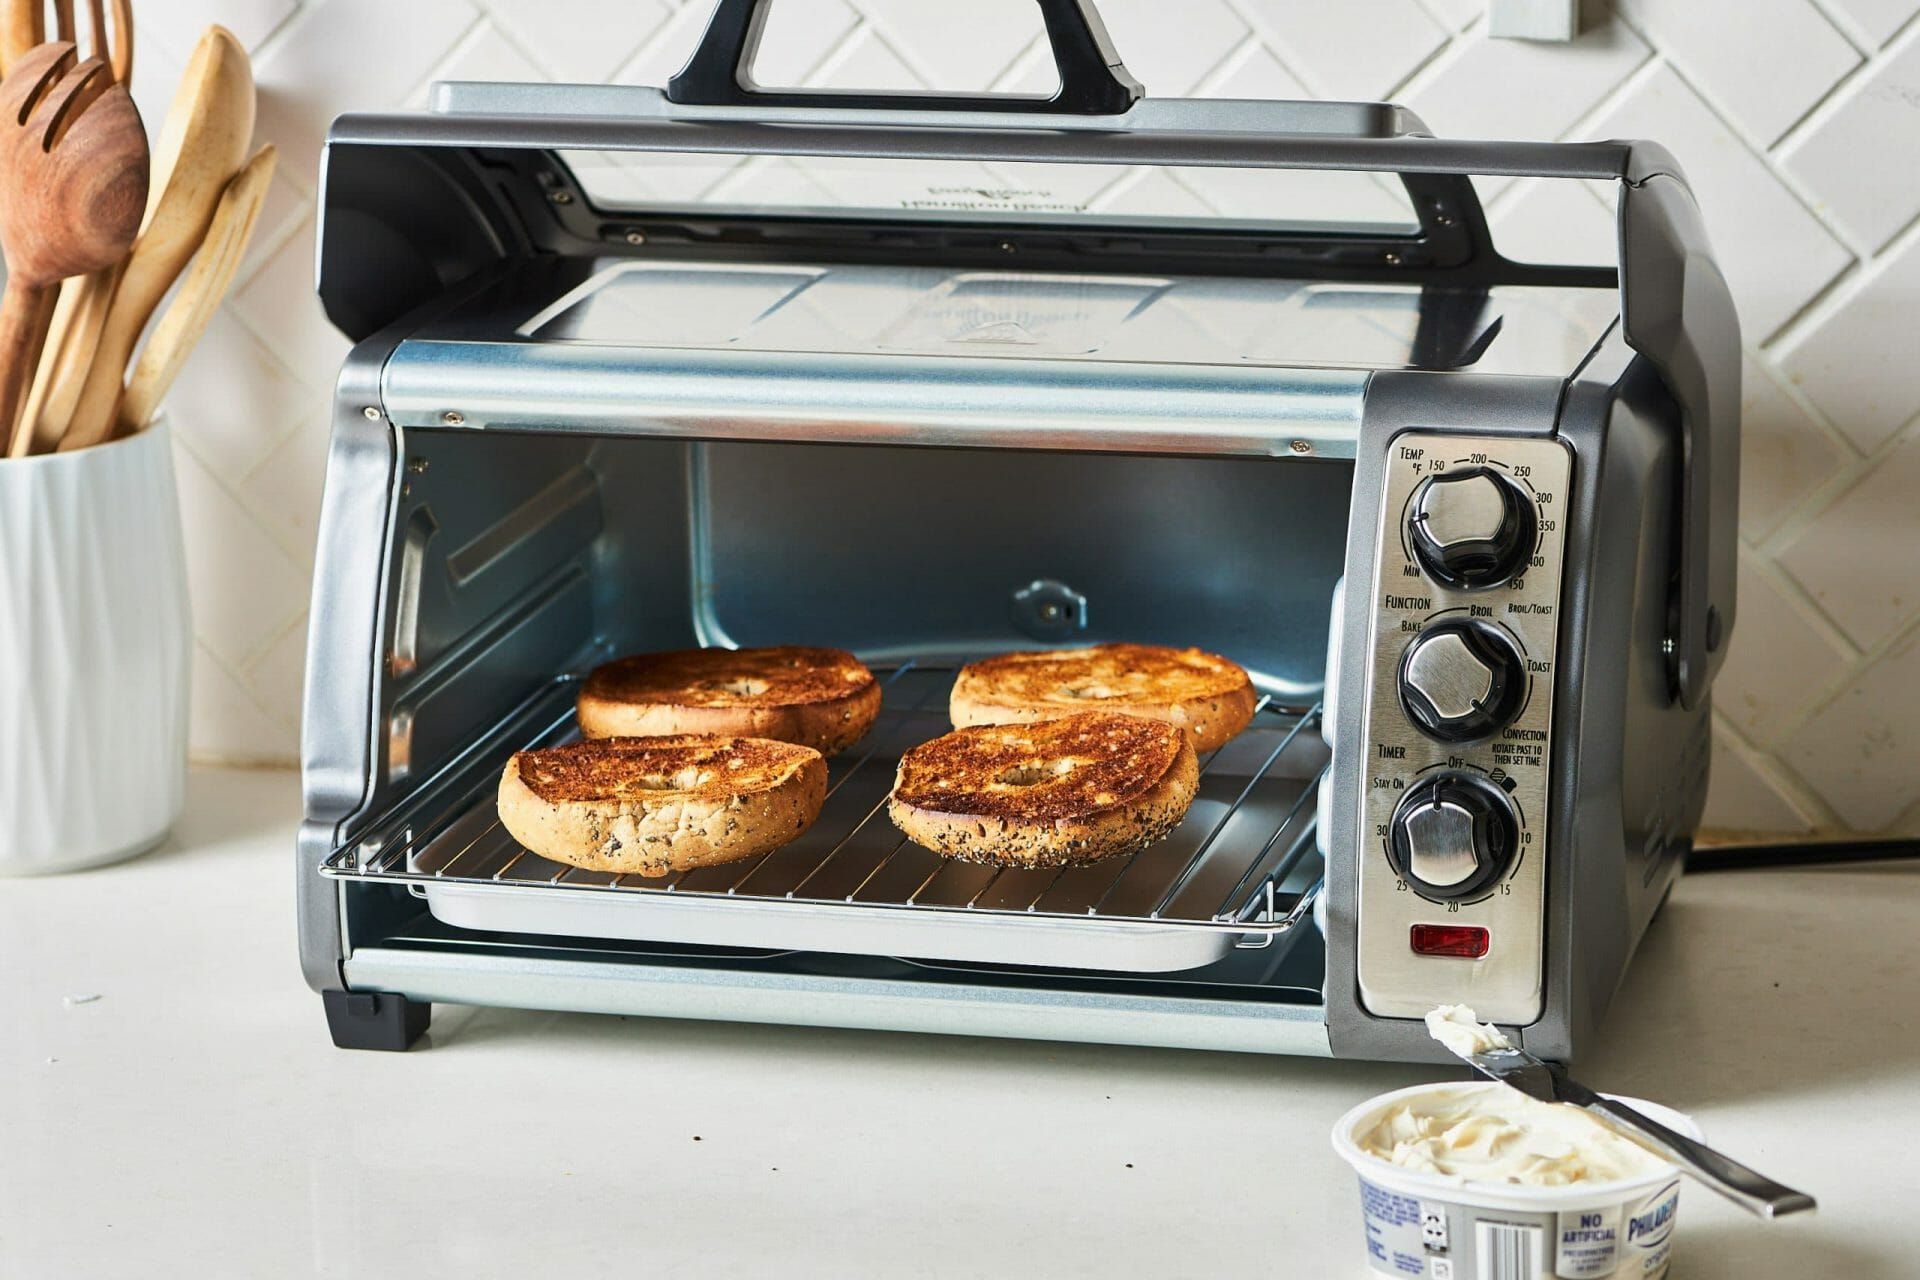 How Many Watts Does a Toaster Oven Use